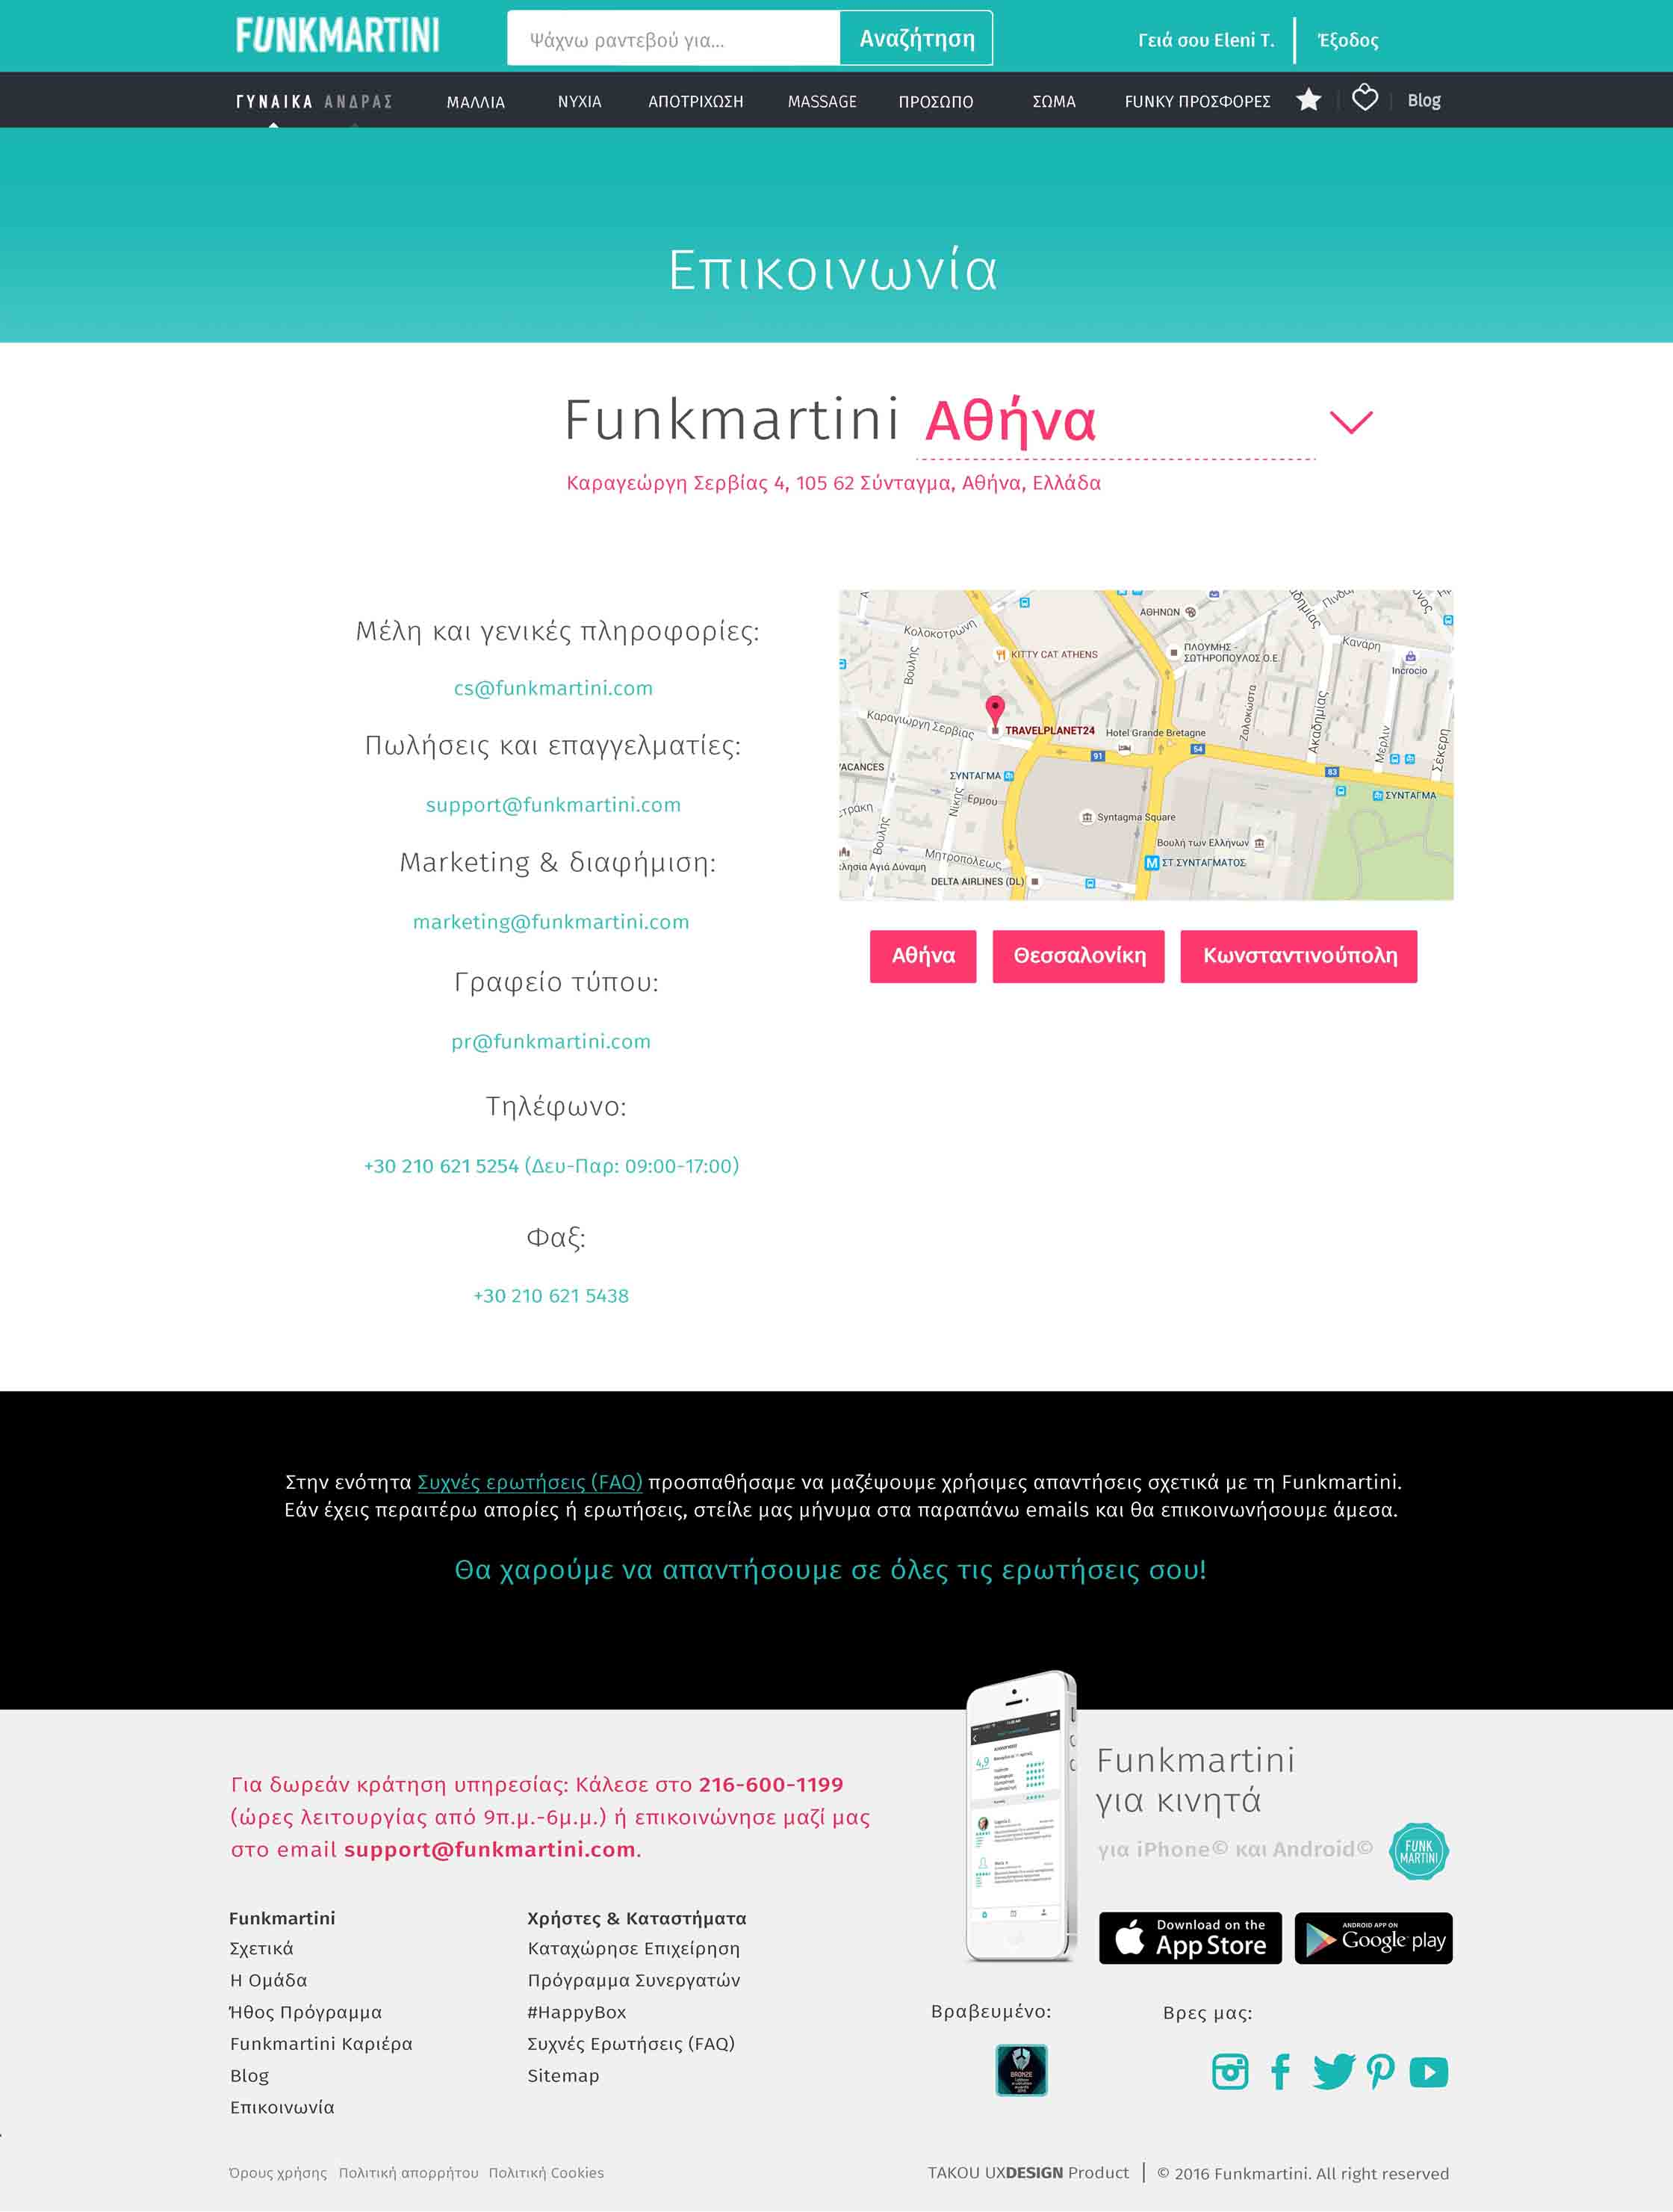 Synkt_Contact Us Funkmartini_Top Page_Ite 1